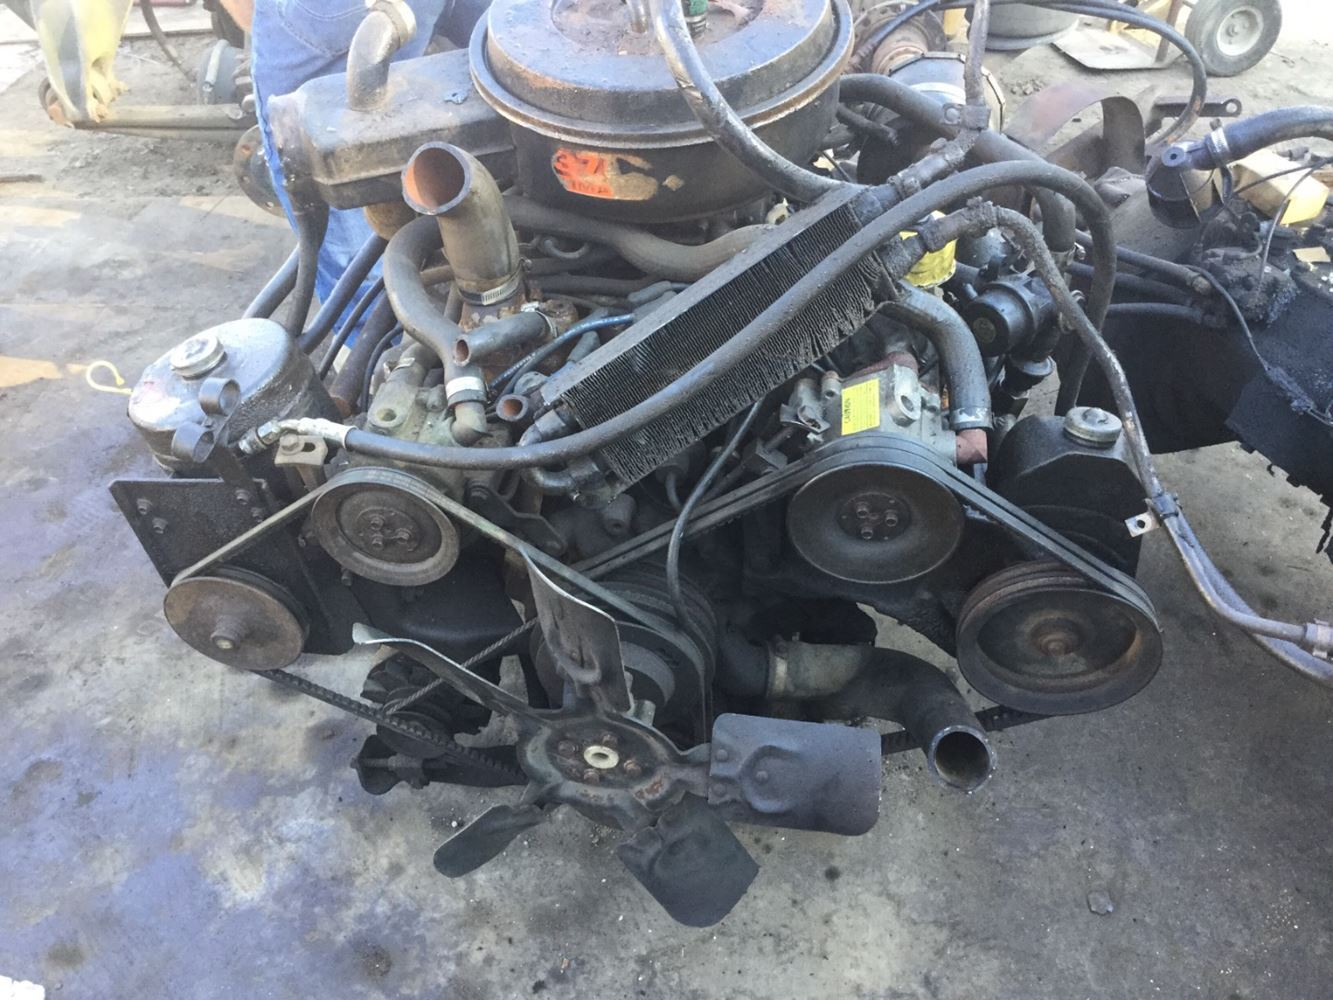 Honda Cx Usa Cylinder Block Bighu E E A together with Isuzu He Tc Timing Pg besides Ford Mustang Wiring Diagram Of Ford Fairlane Wiring Diagram furthermore D Shaker Reinstall Img besides Paintchip. on ford 500 wiring diagram